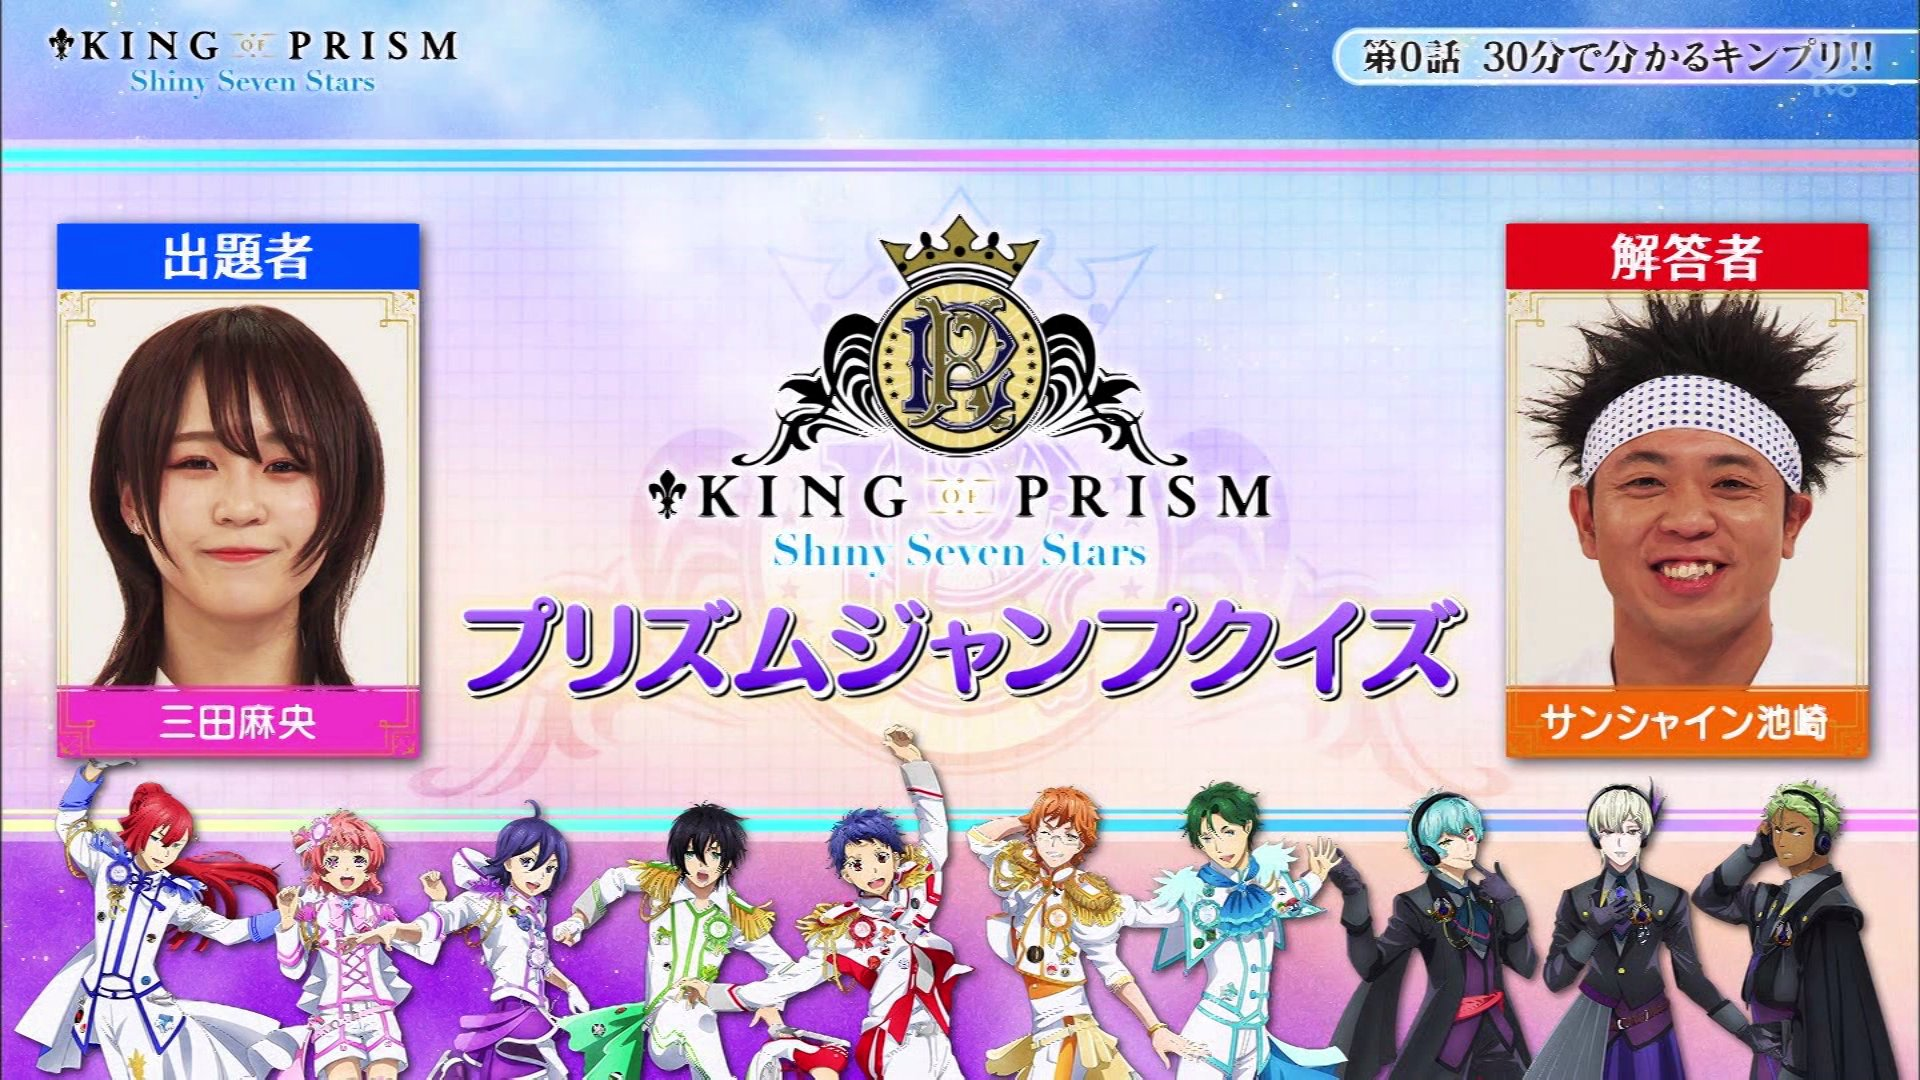 KING OF PRISM 第0話・三田麻央の画像-059